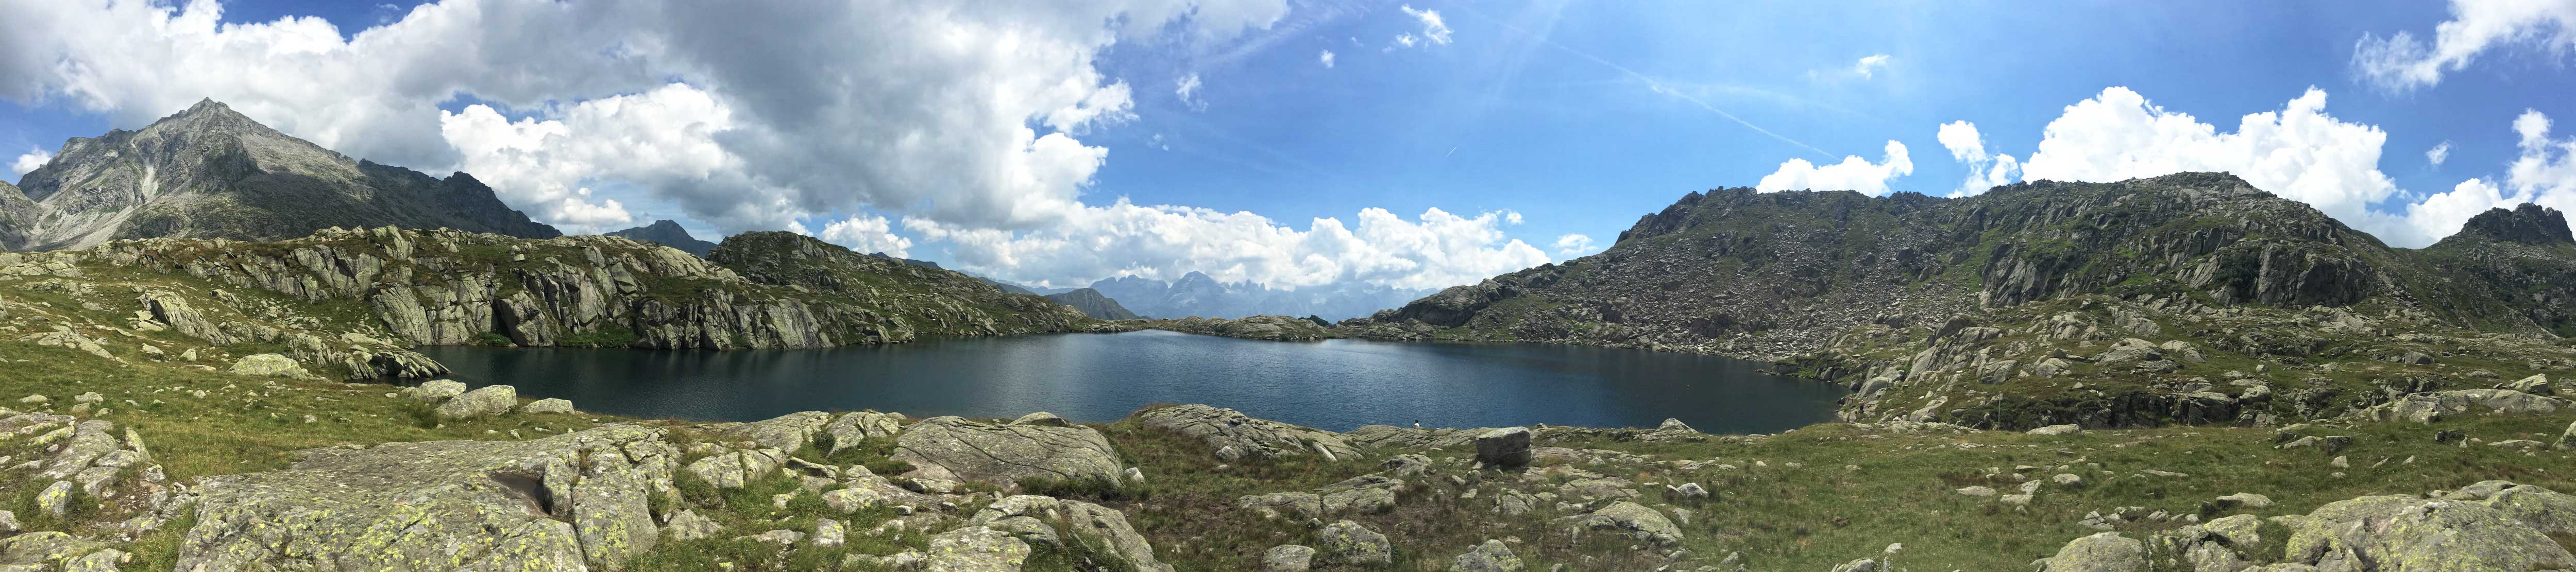 Lago Nero - Cornisello